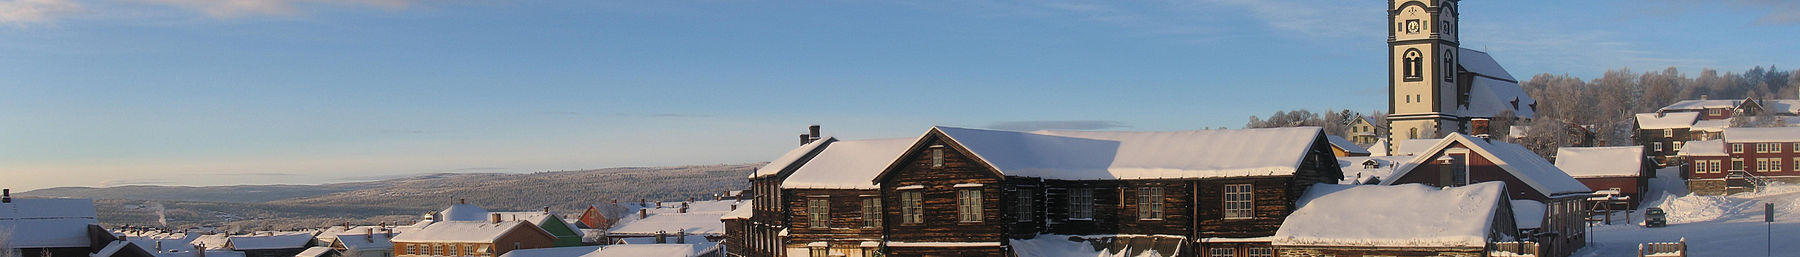 Røros banner Roofs with snow.jpg